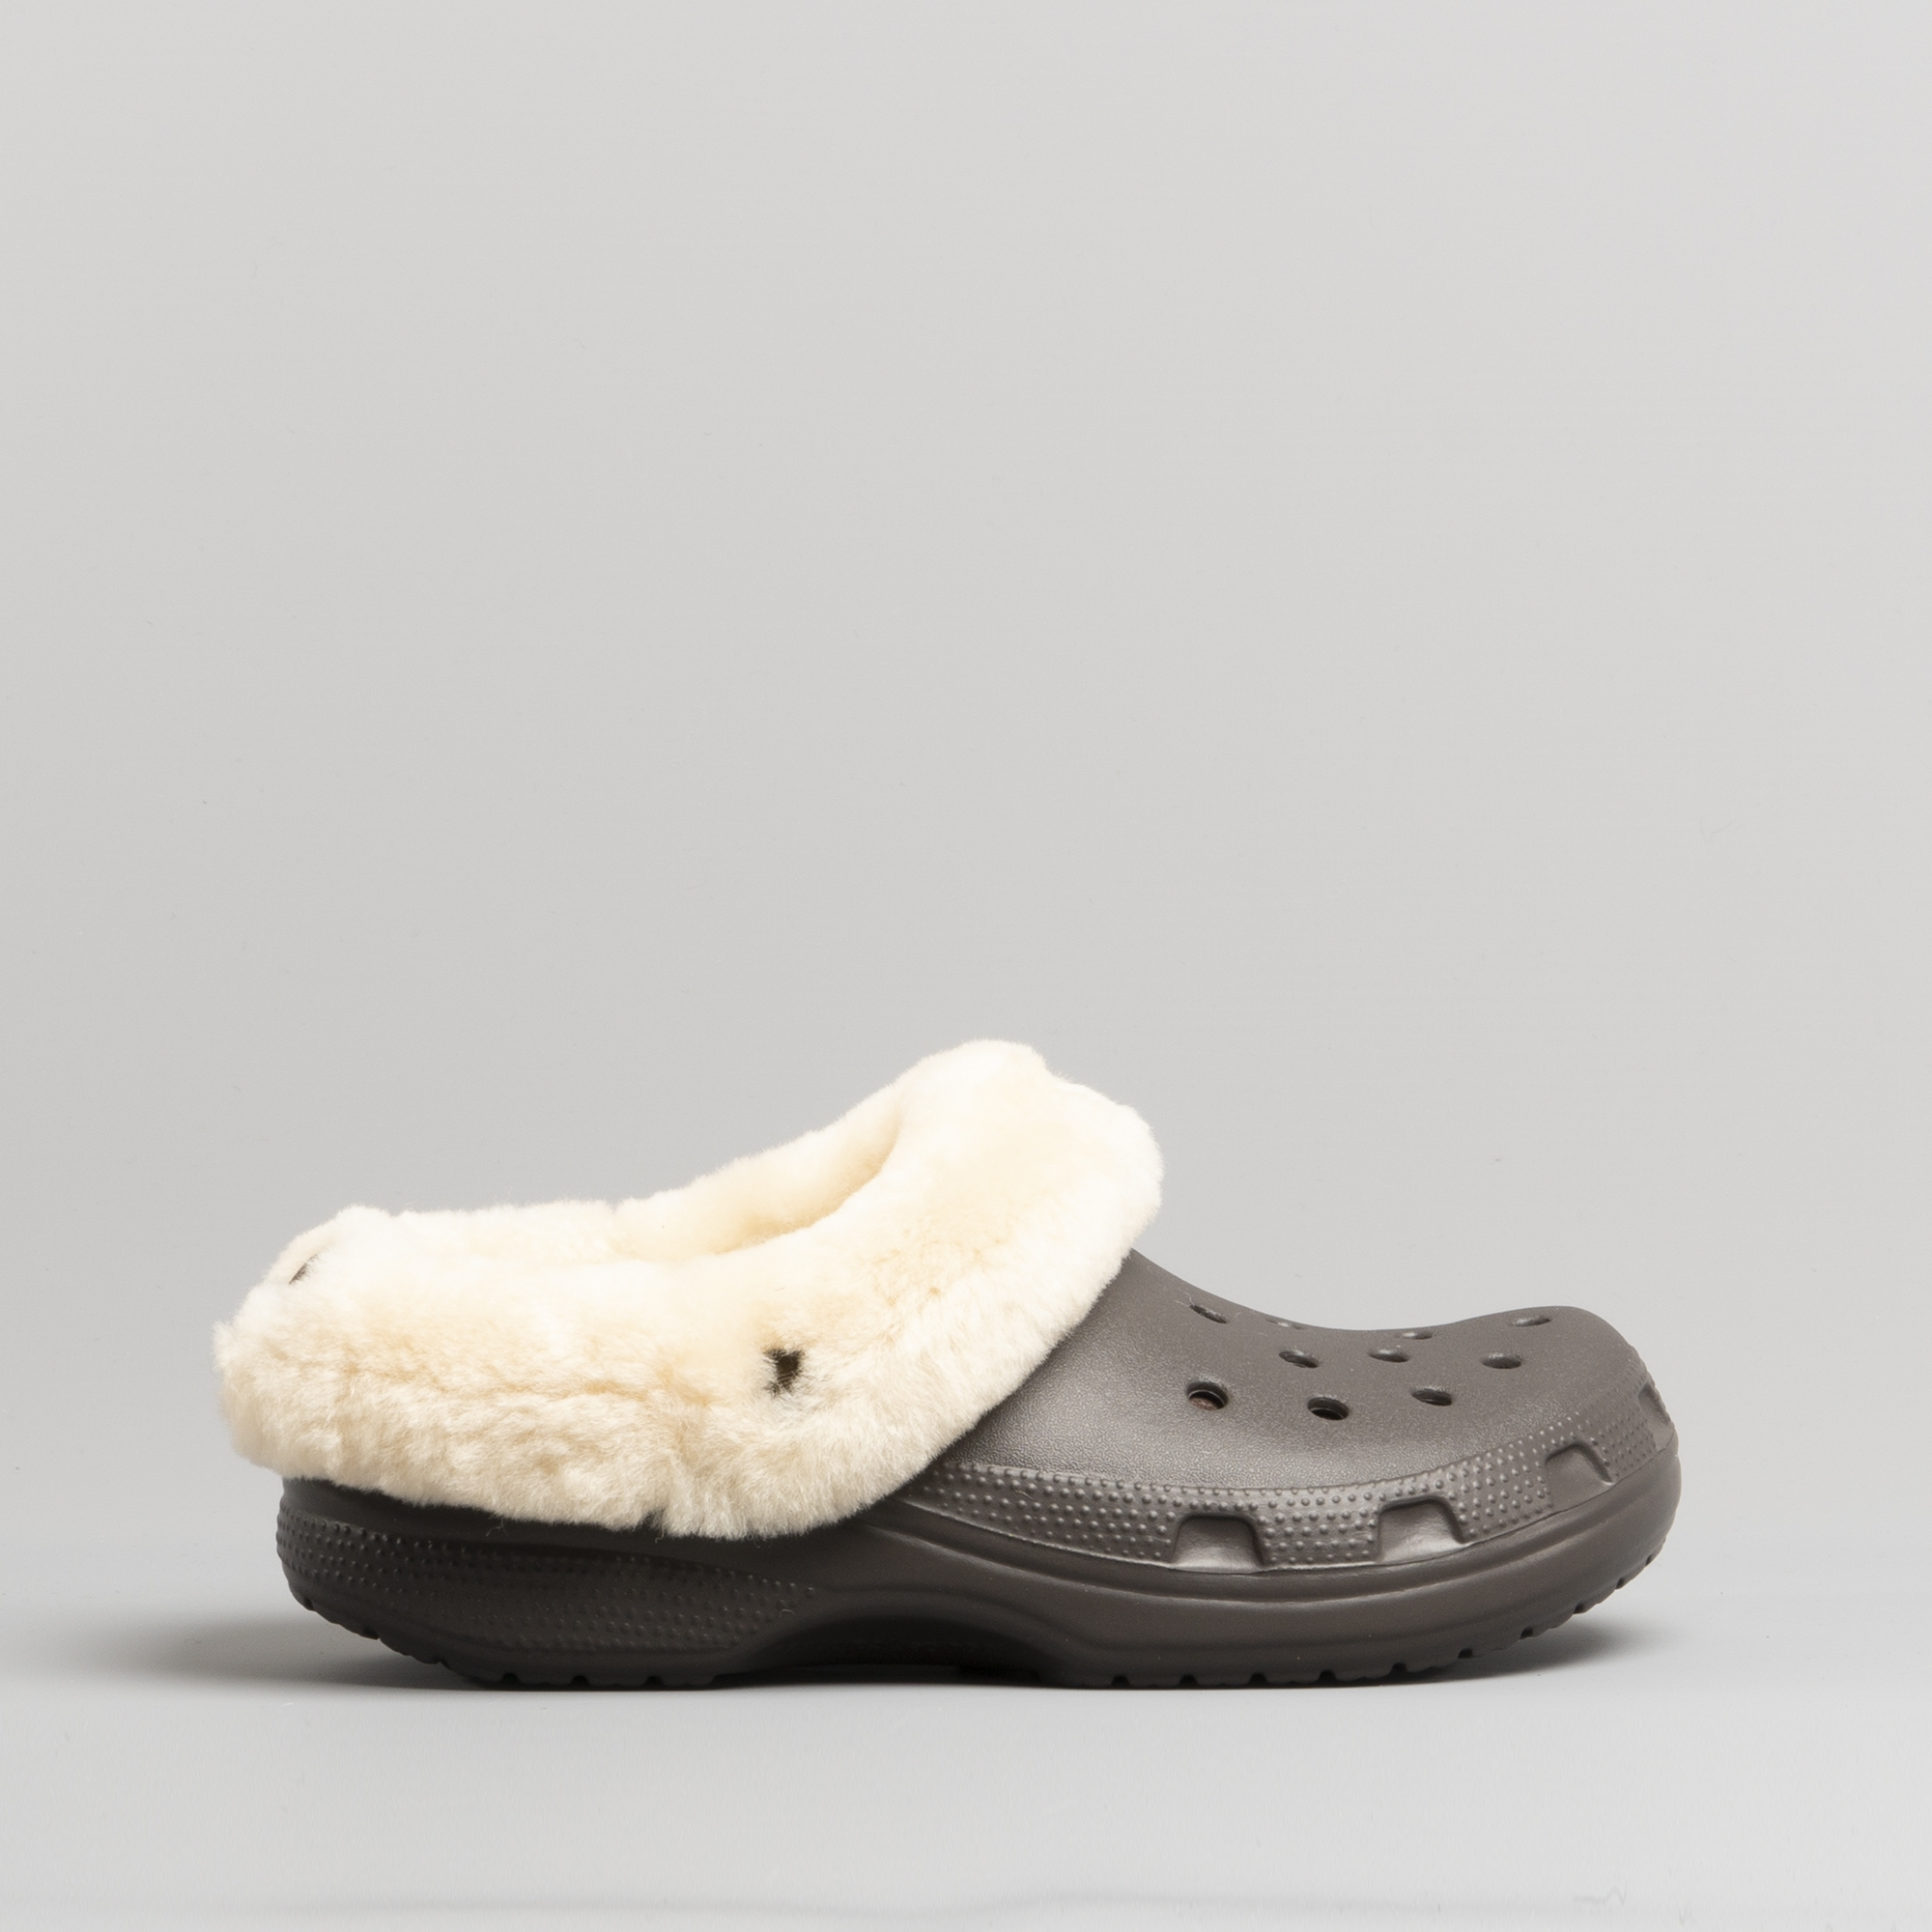 classic fur lined crocs promo code for